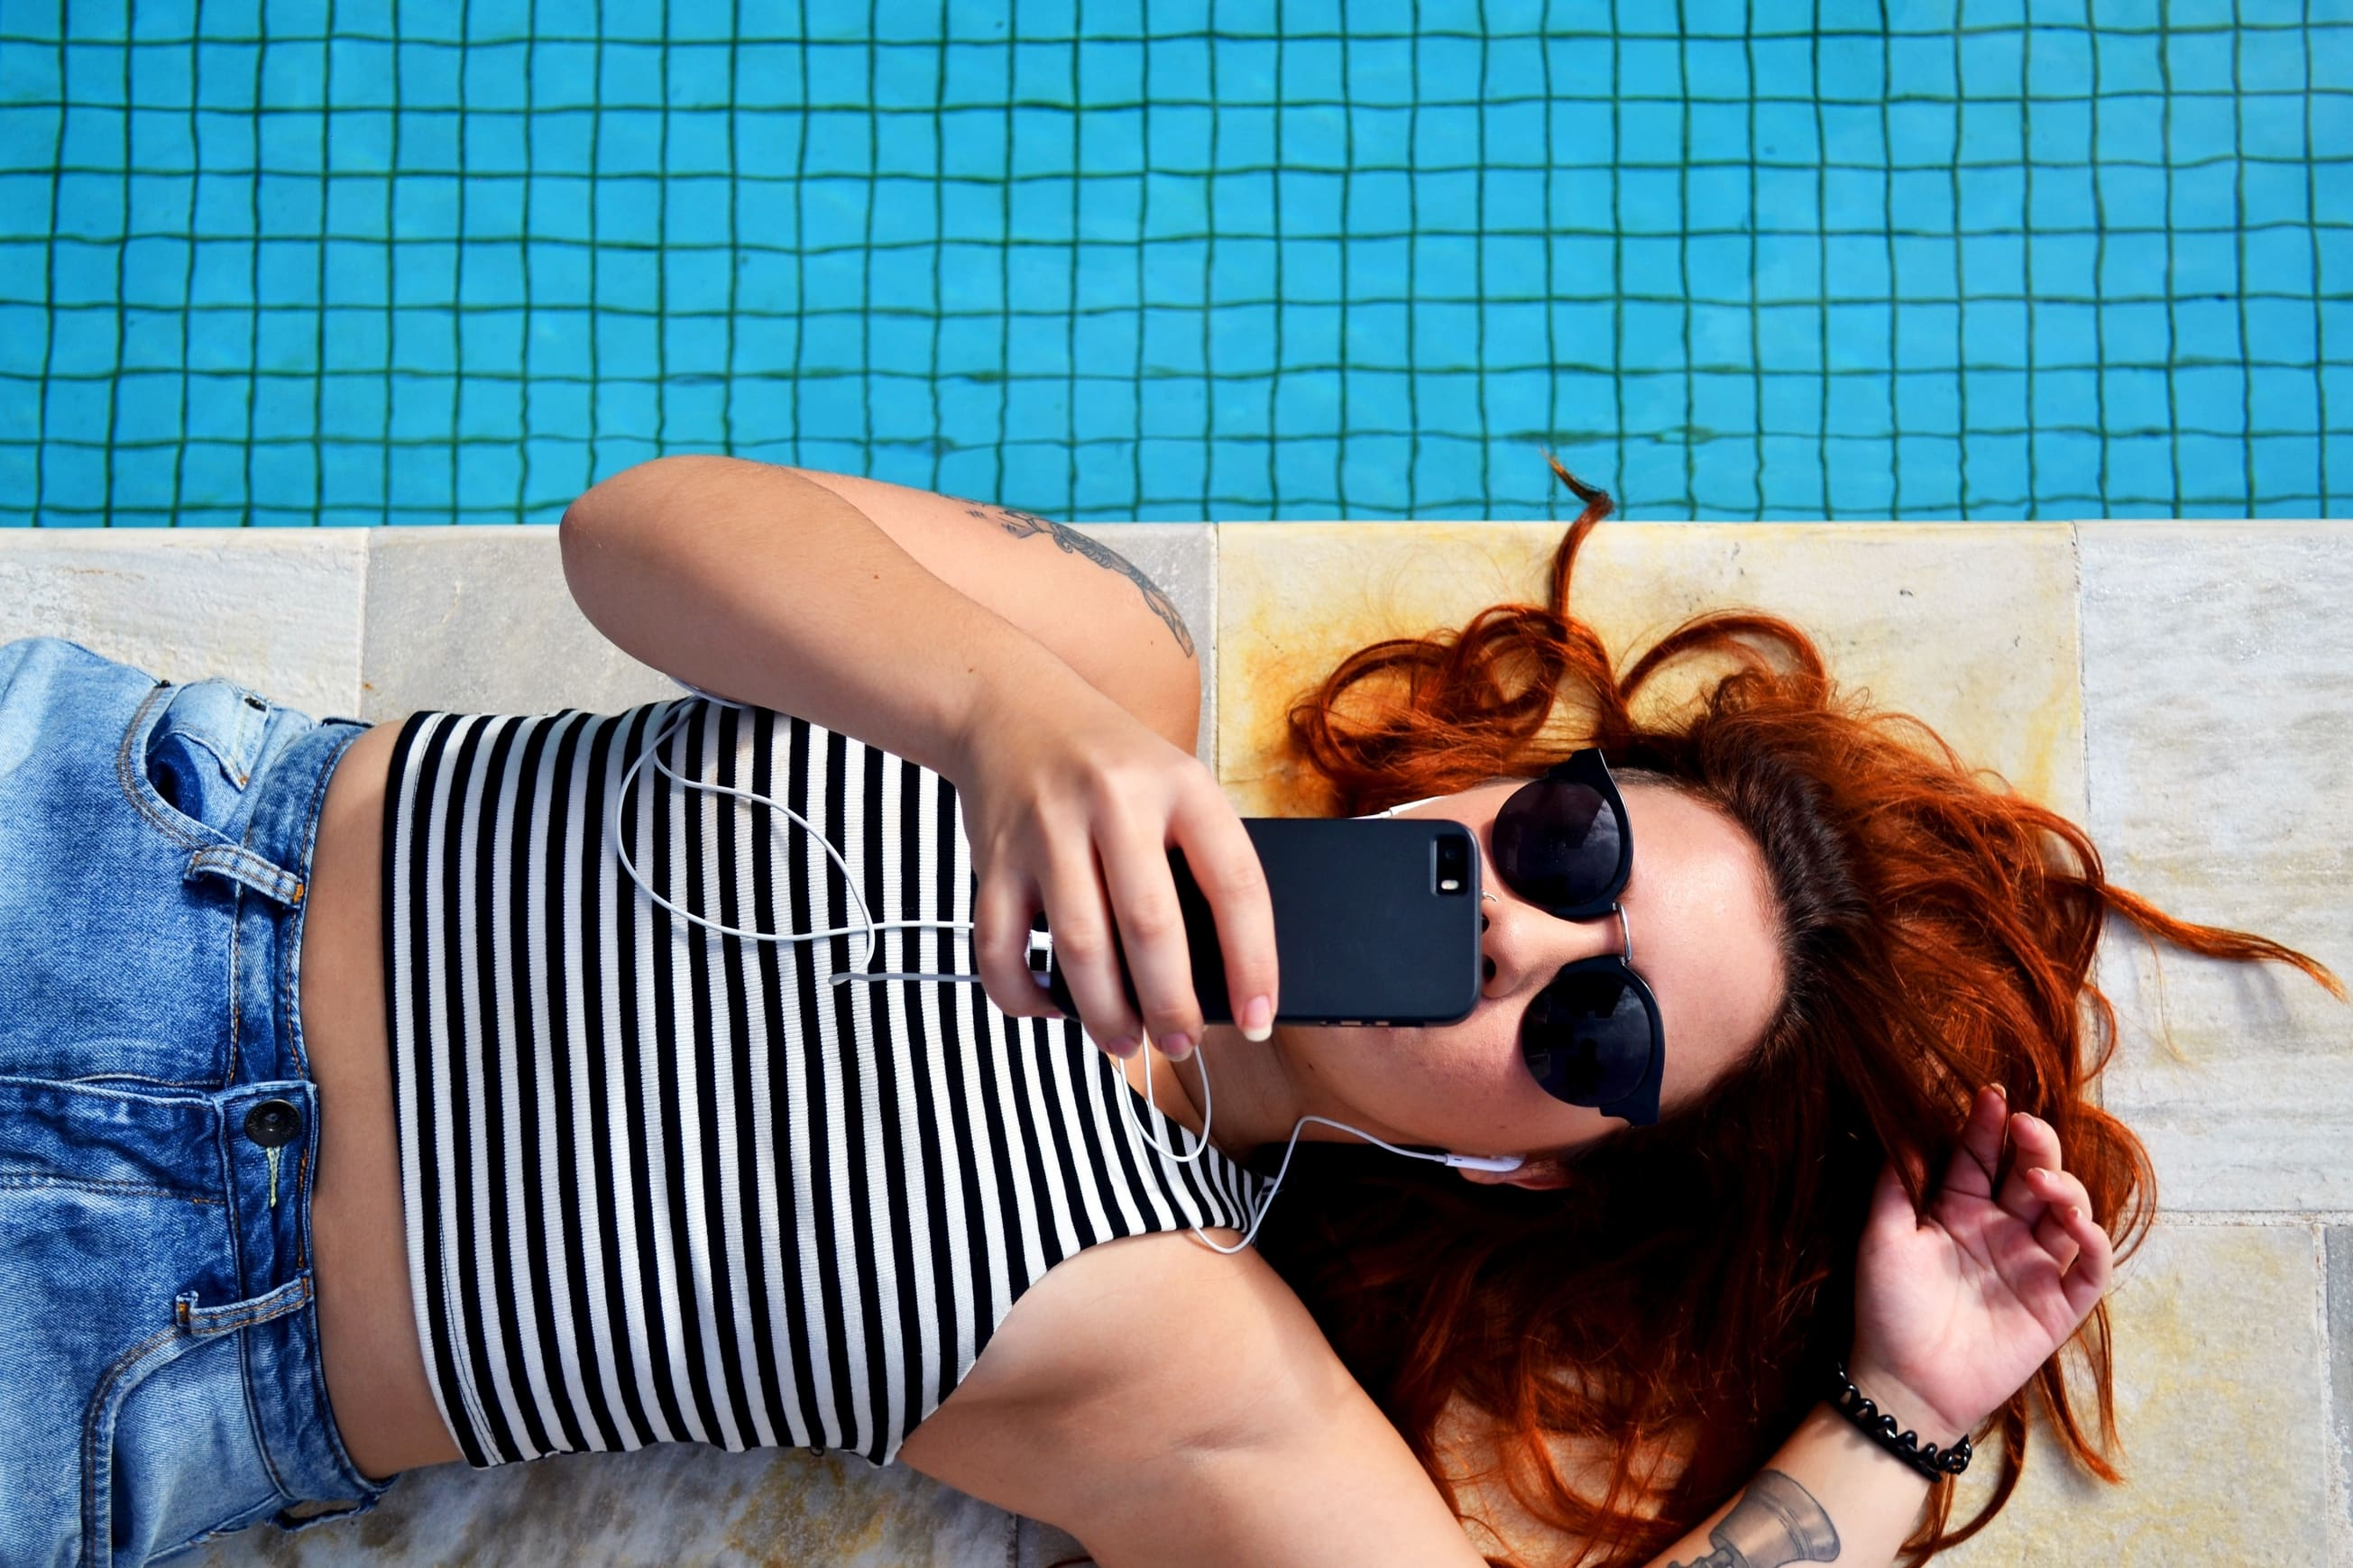 woman listening to music by pool